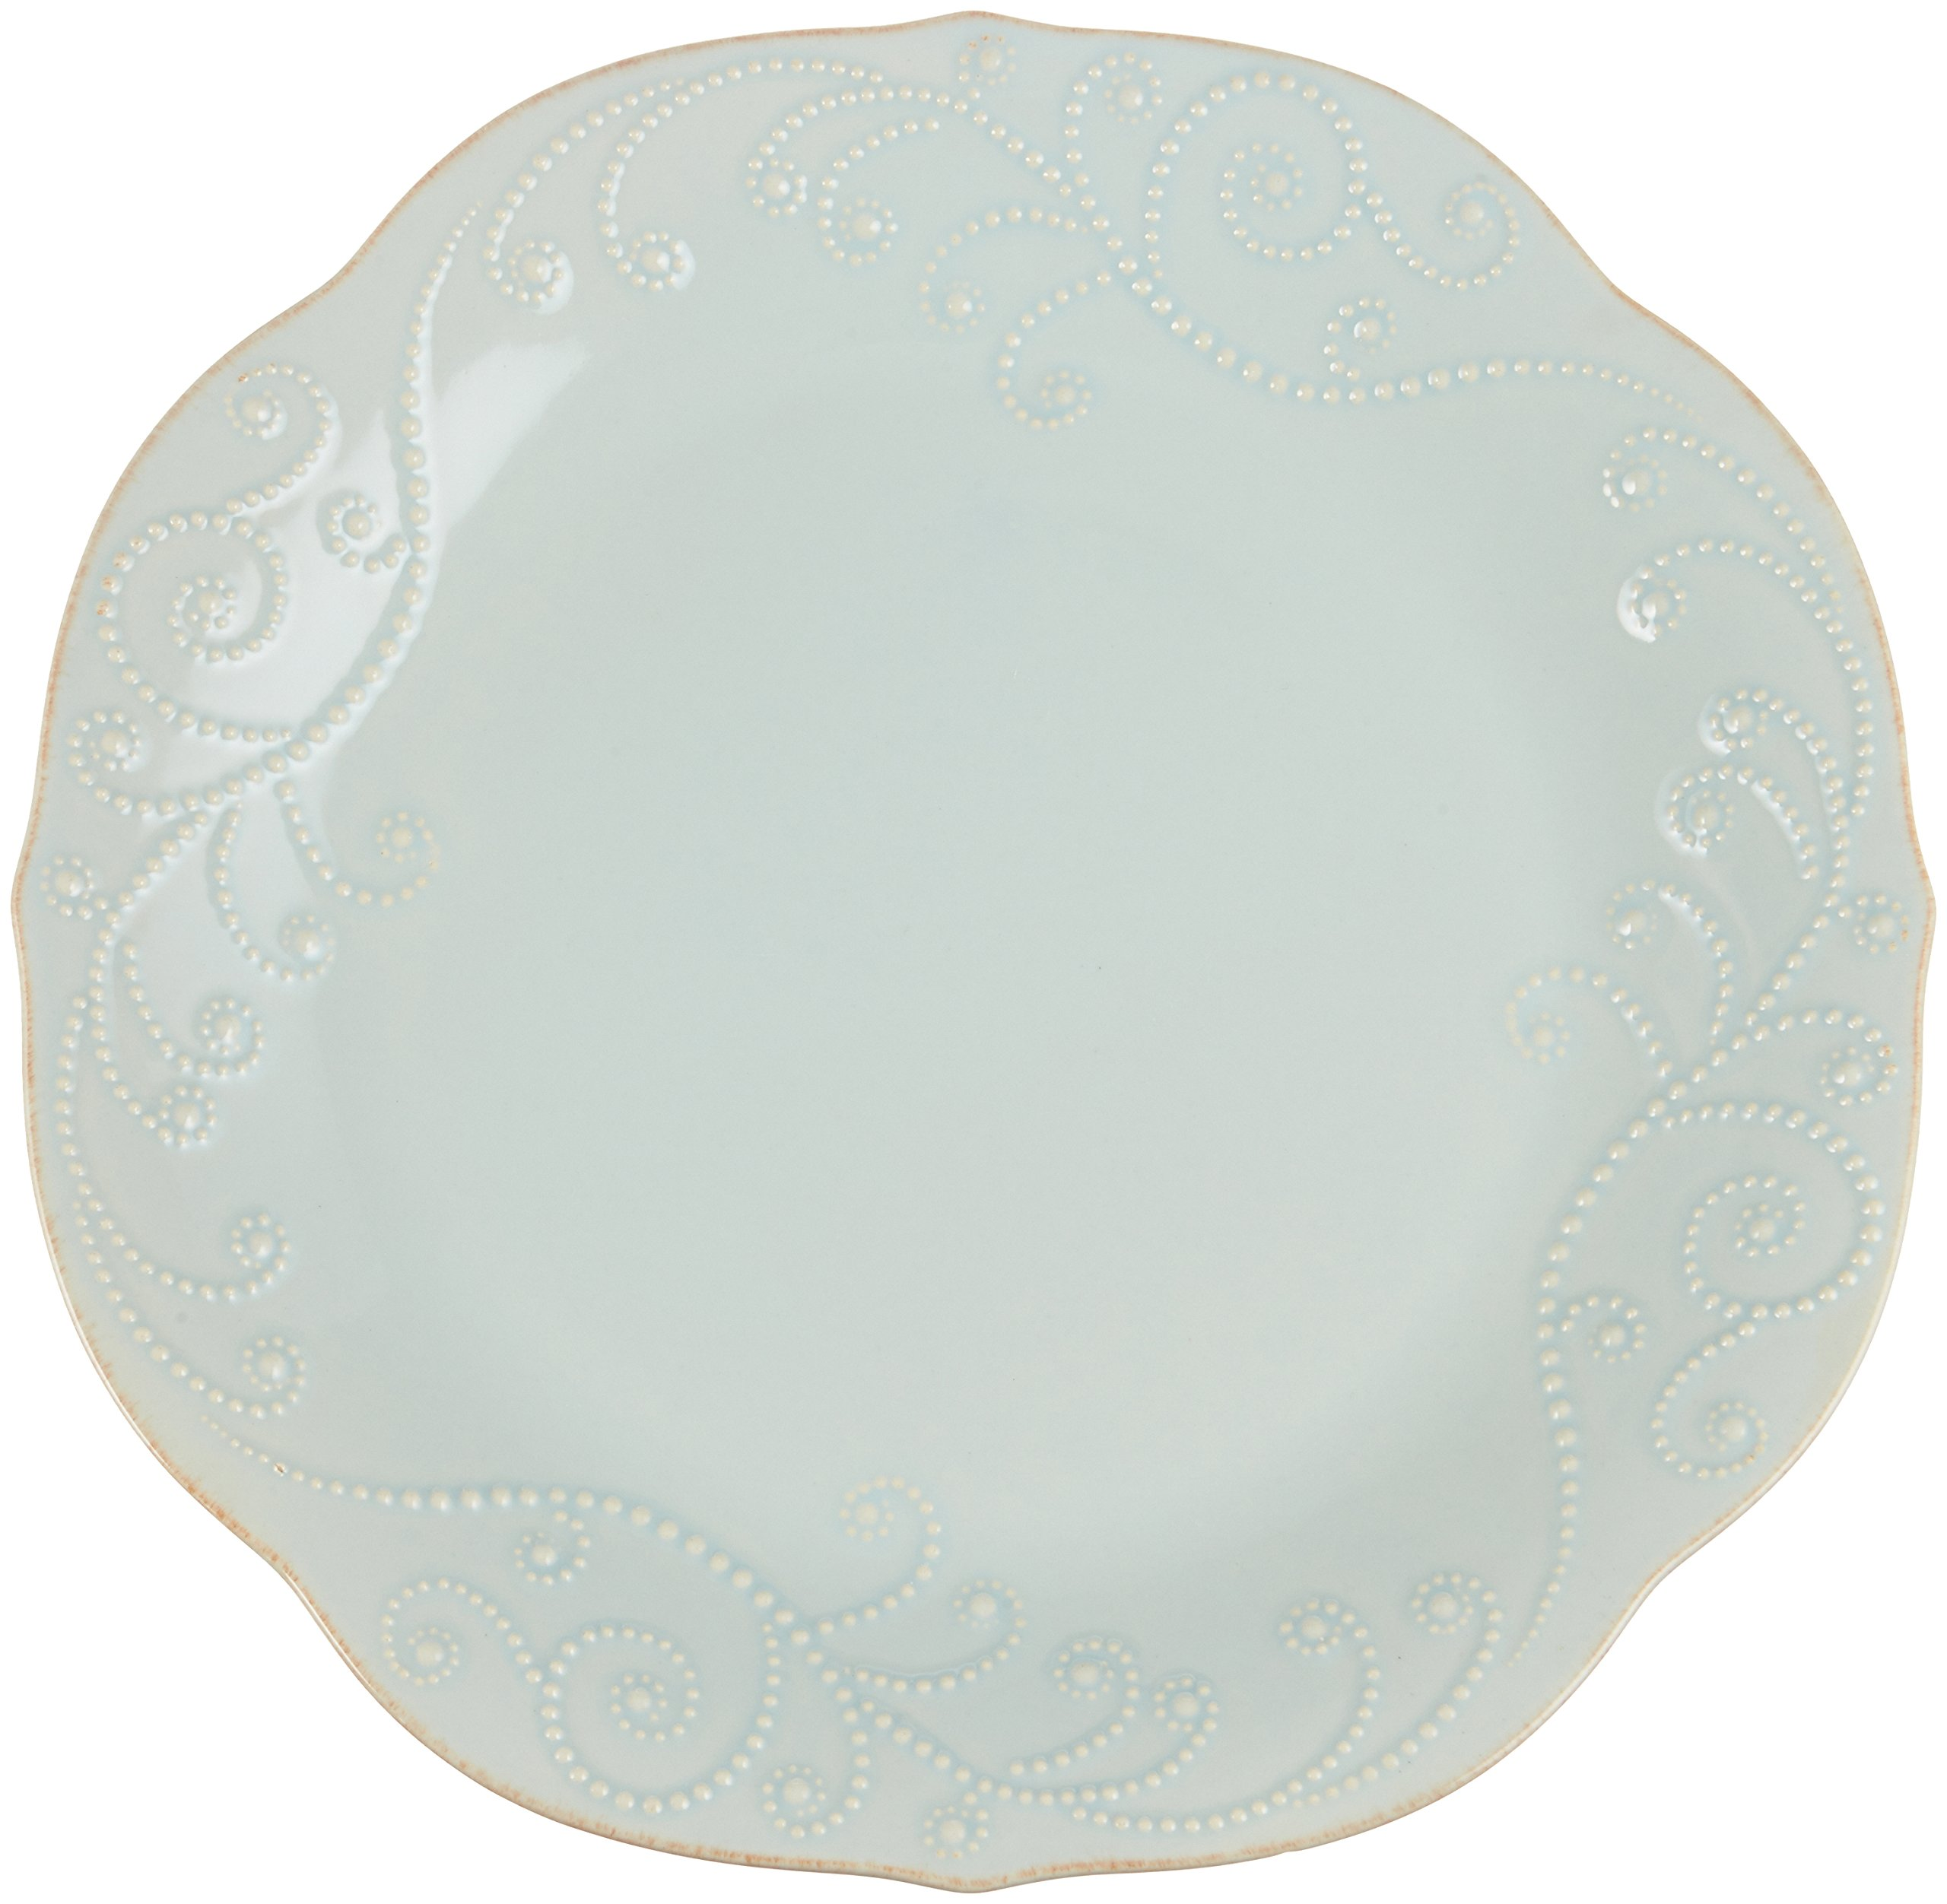 Lenox French Perle Dinner Plate, Ice Blue